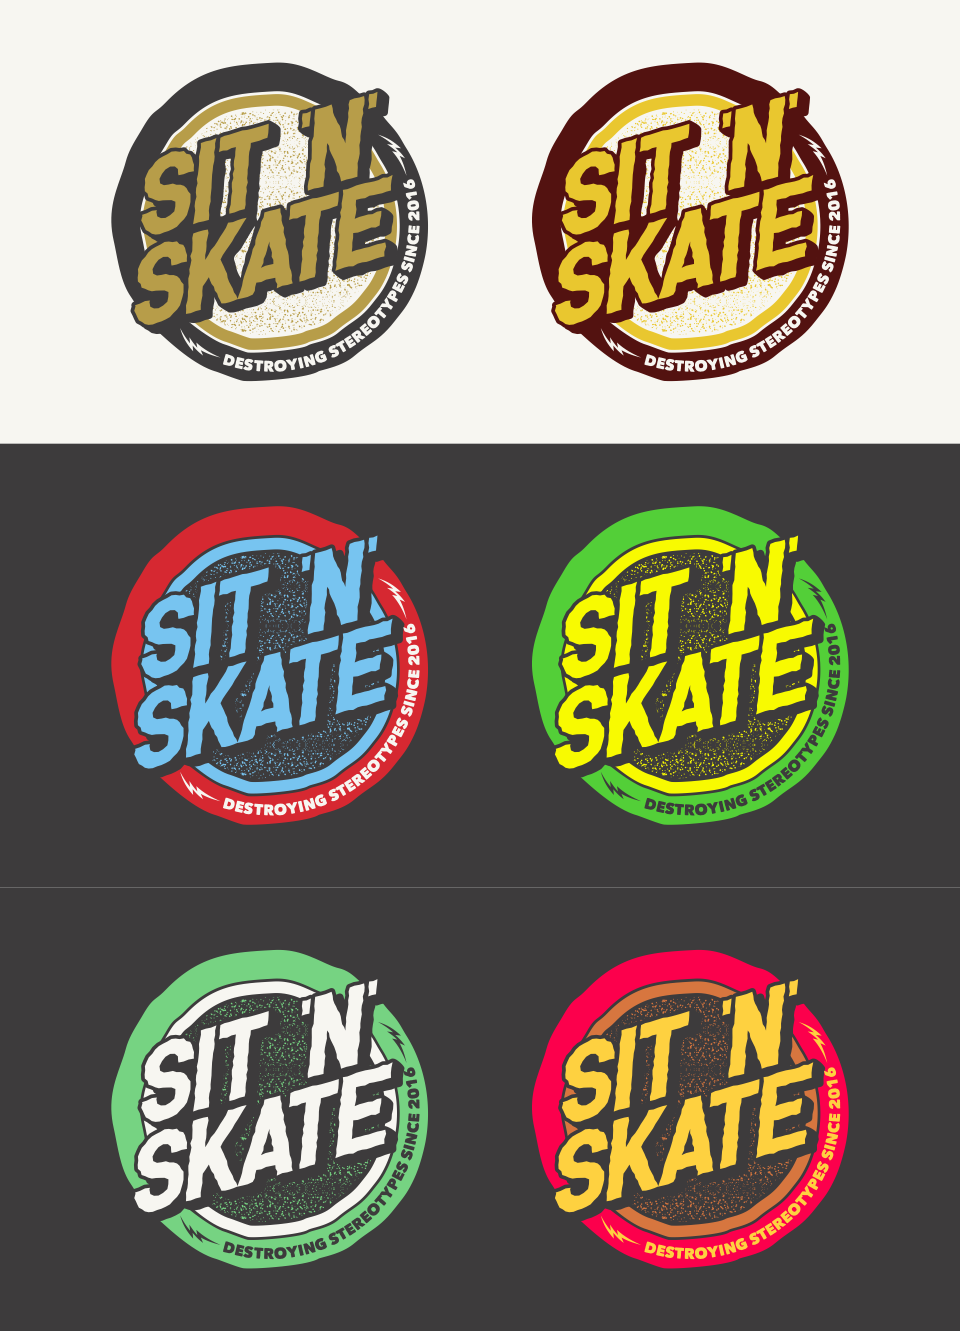 SKATE-style Logo + Corporate Identity for WHEELCHAIR users